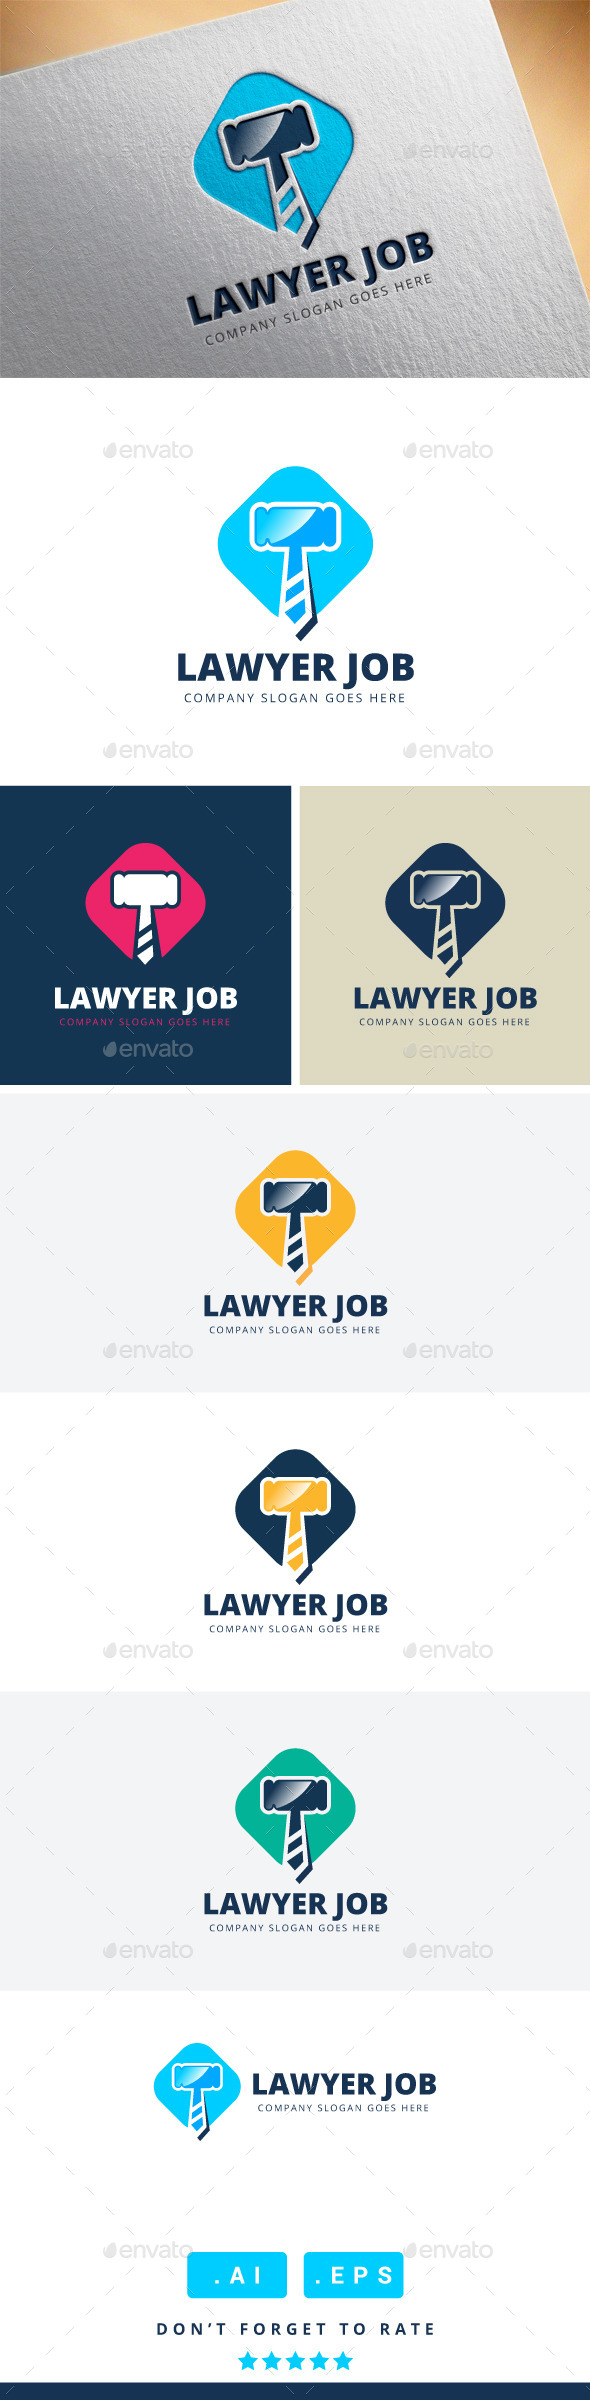 GraphicRiver Lawyer Job Logo 11426296